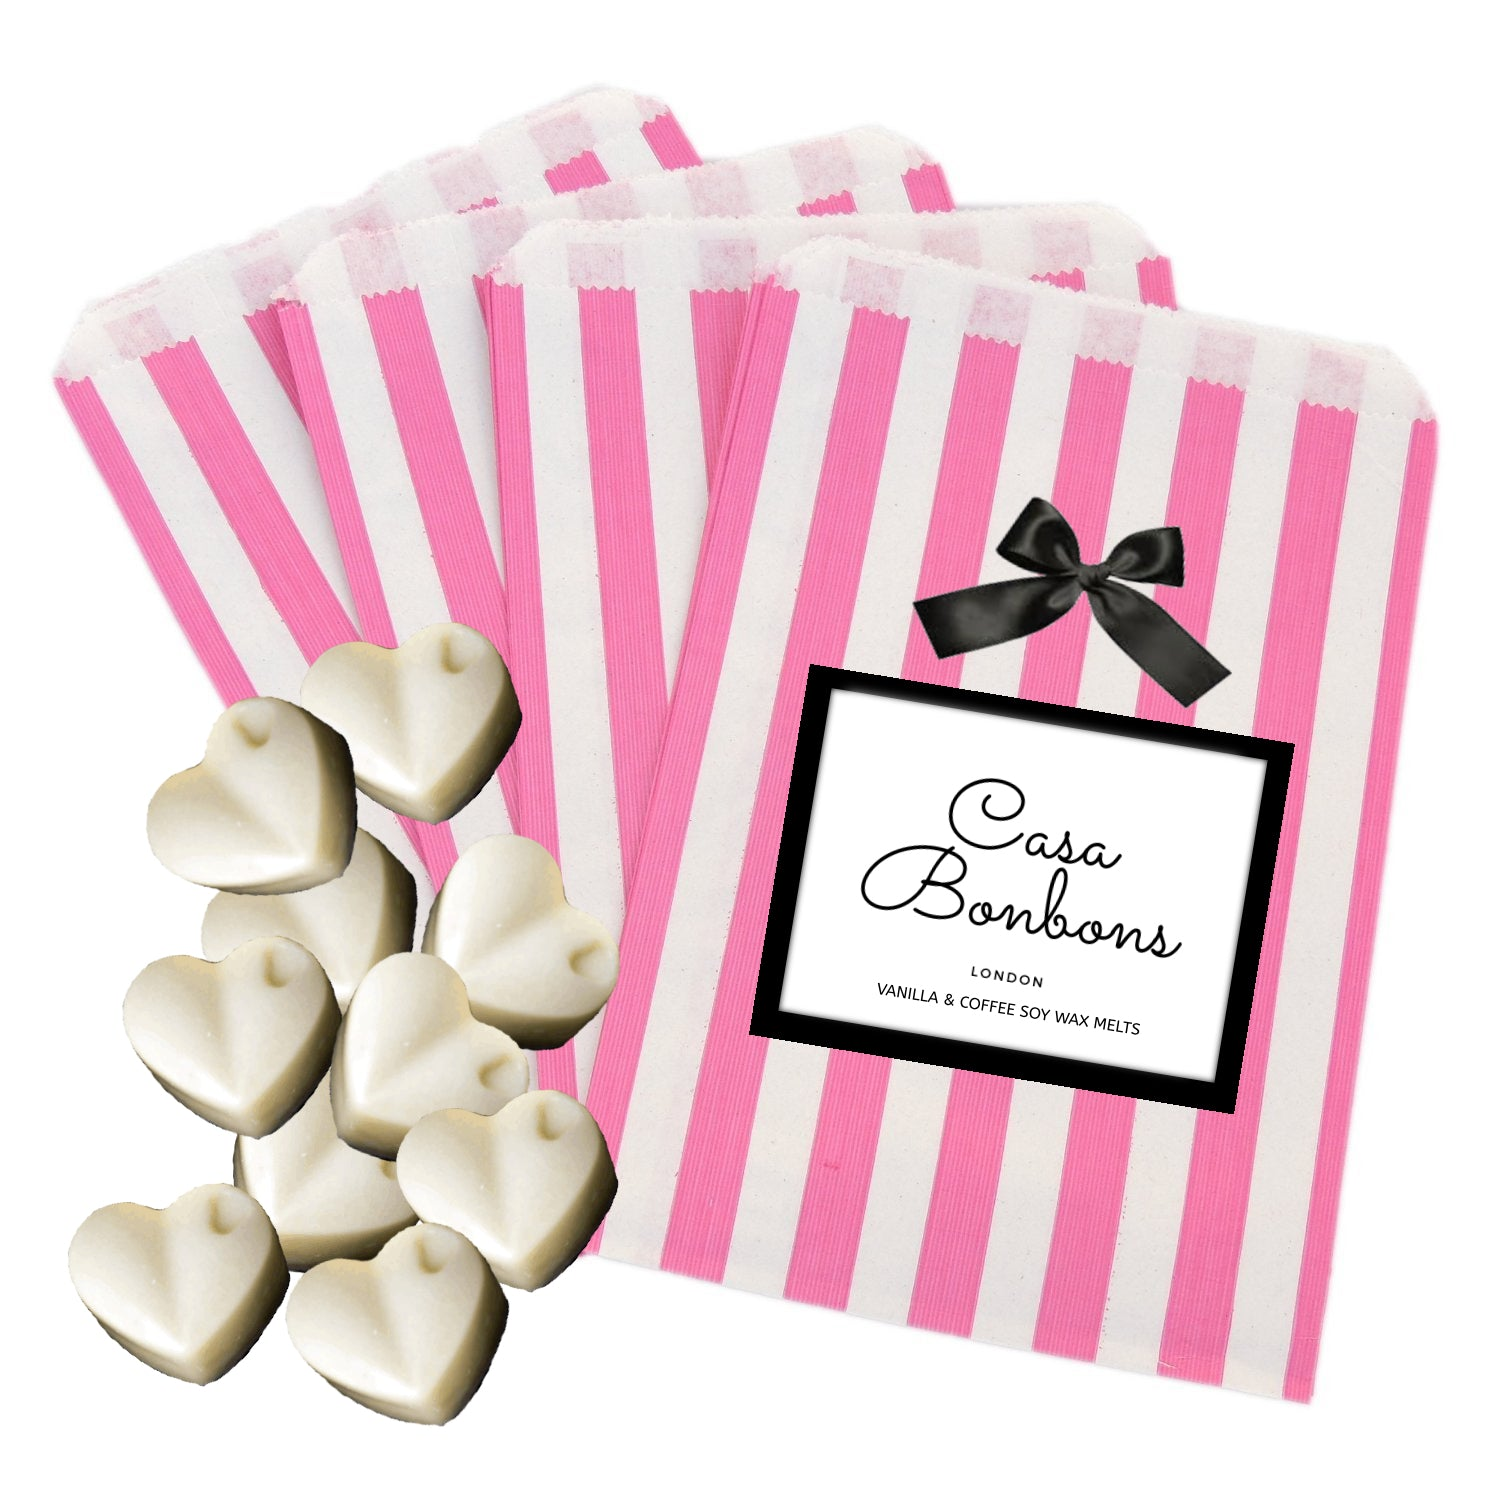 Vanilla & Coffee gentle scented Soy Wax Melts (10 hearts), PRE ORDER delivery end of February - natoorio